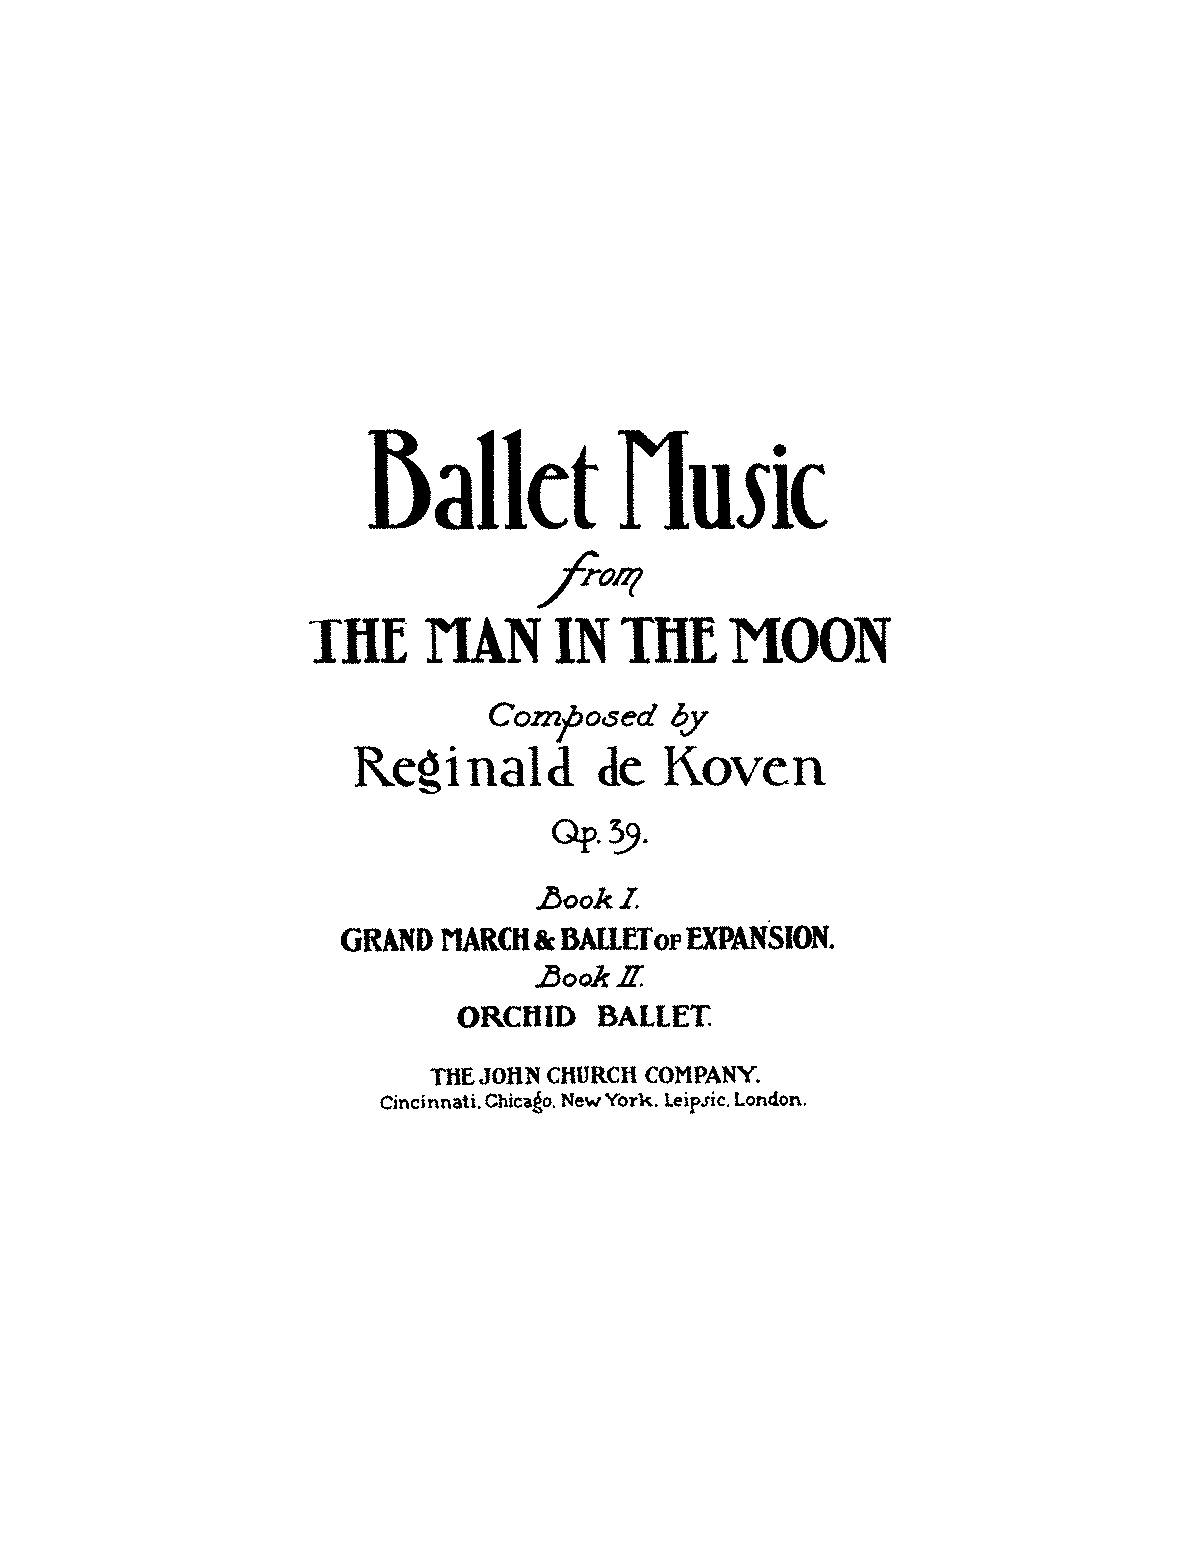 PMLP581550-RDeKoven The Man in the Moon ballet book1.pdf